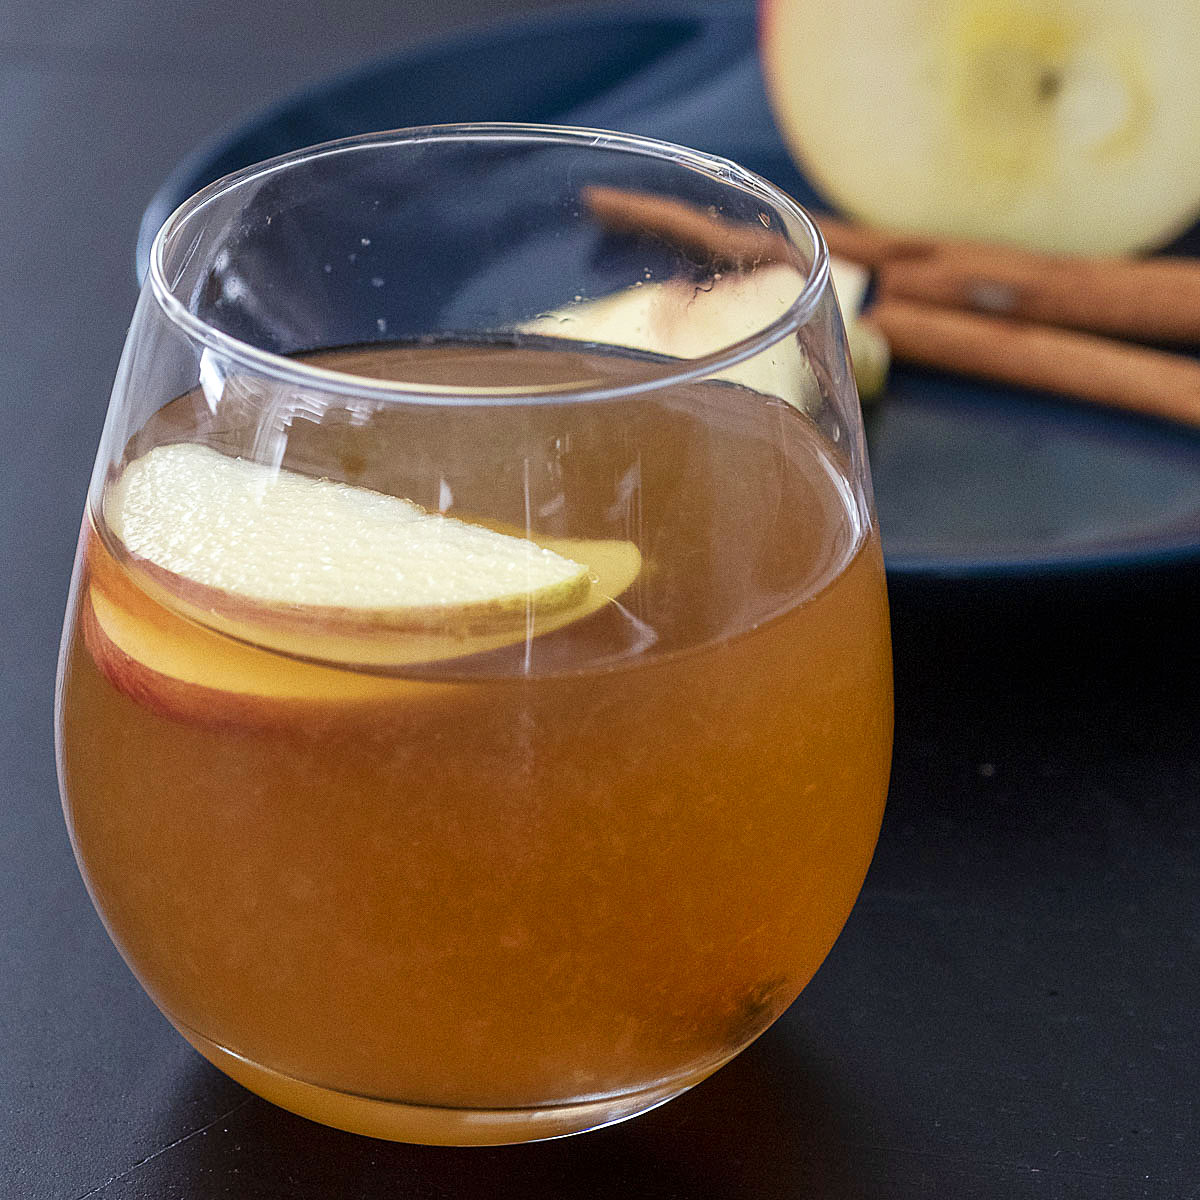 A glass of whiskey sour in front of a blue plate with apple slices, half an apple and cinnamon sticks